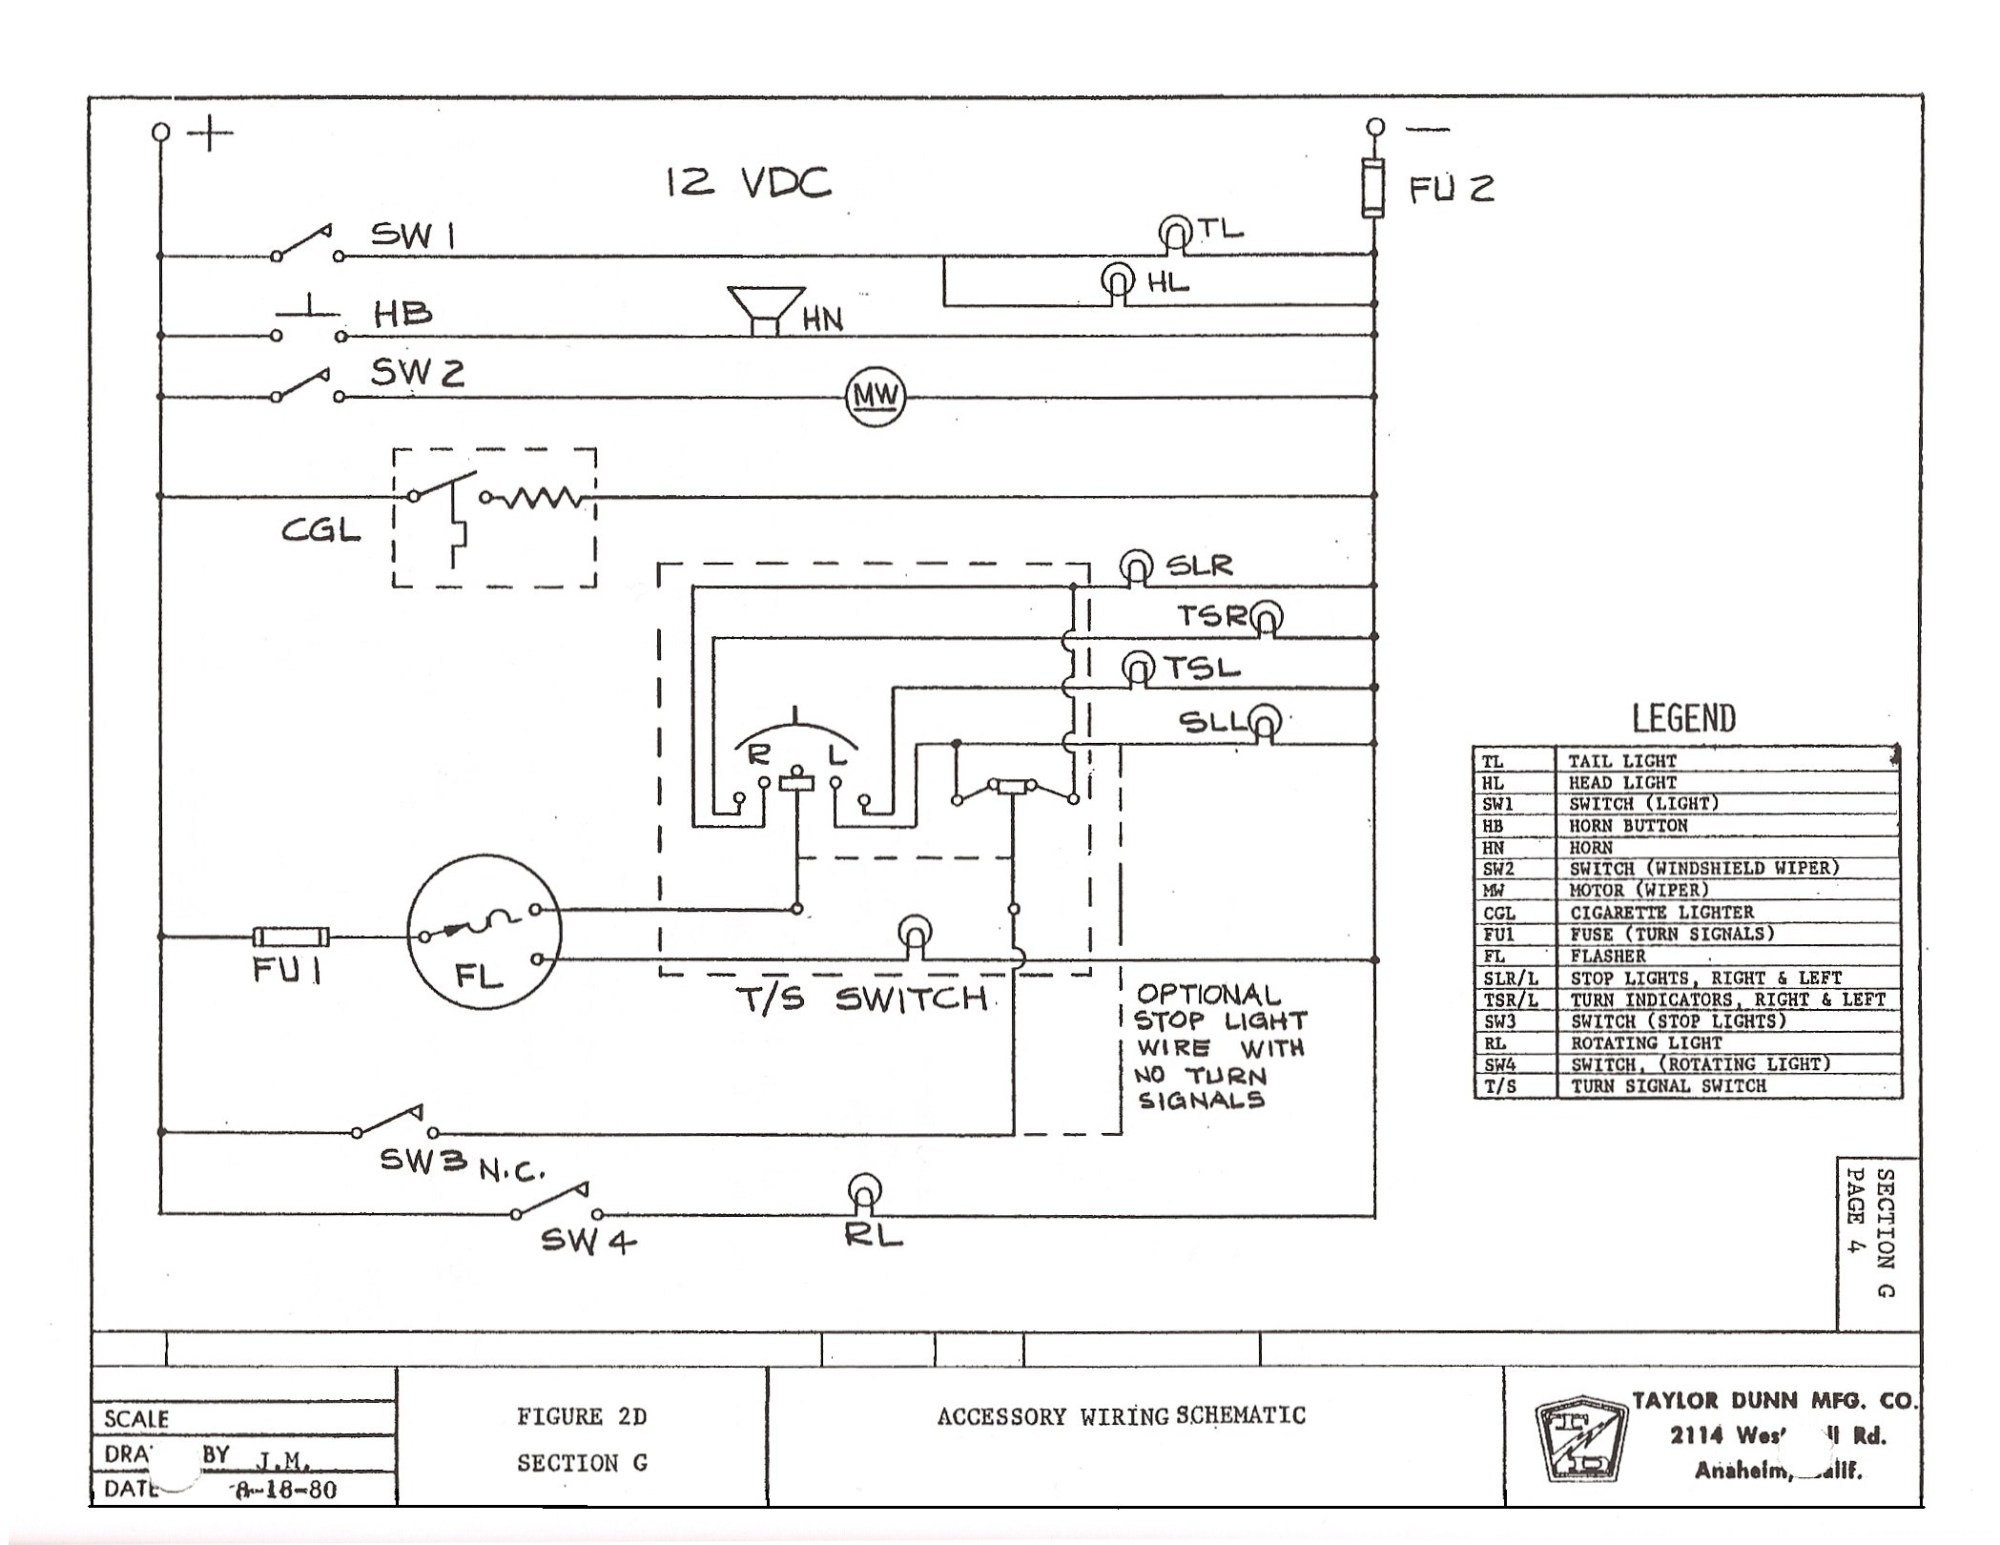 hight resolution of lenel access control wiring diagram lenel 1320 wiring diagram discrd of lenel access control wiring diagram